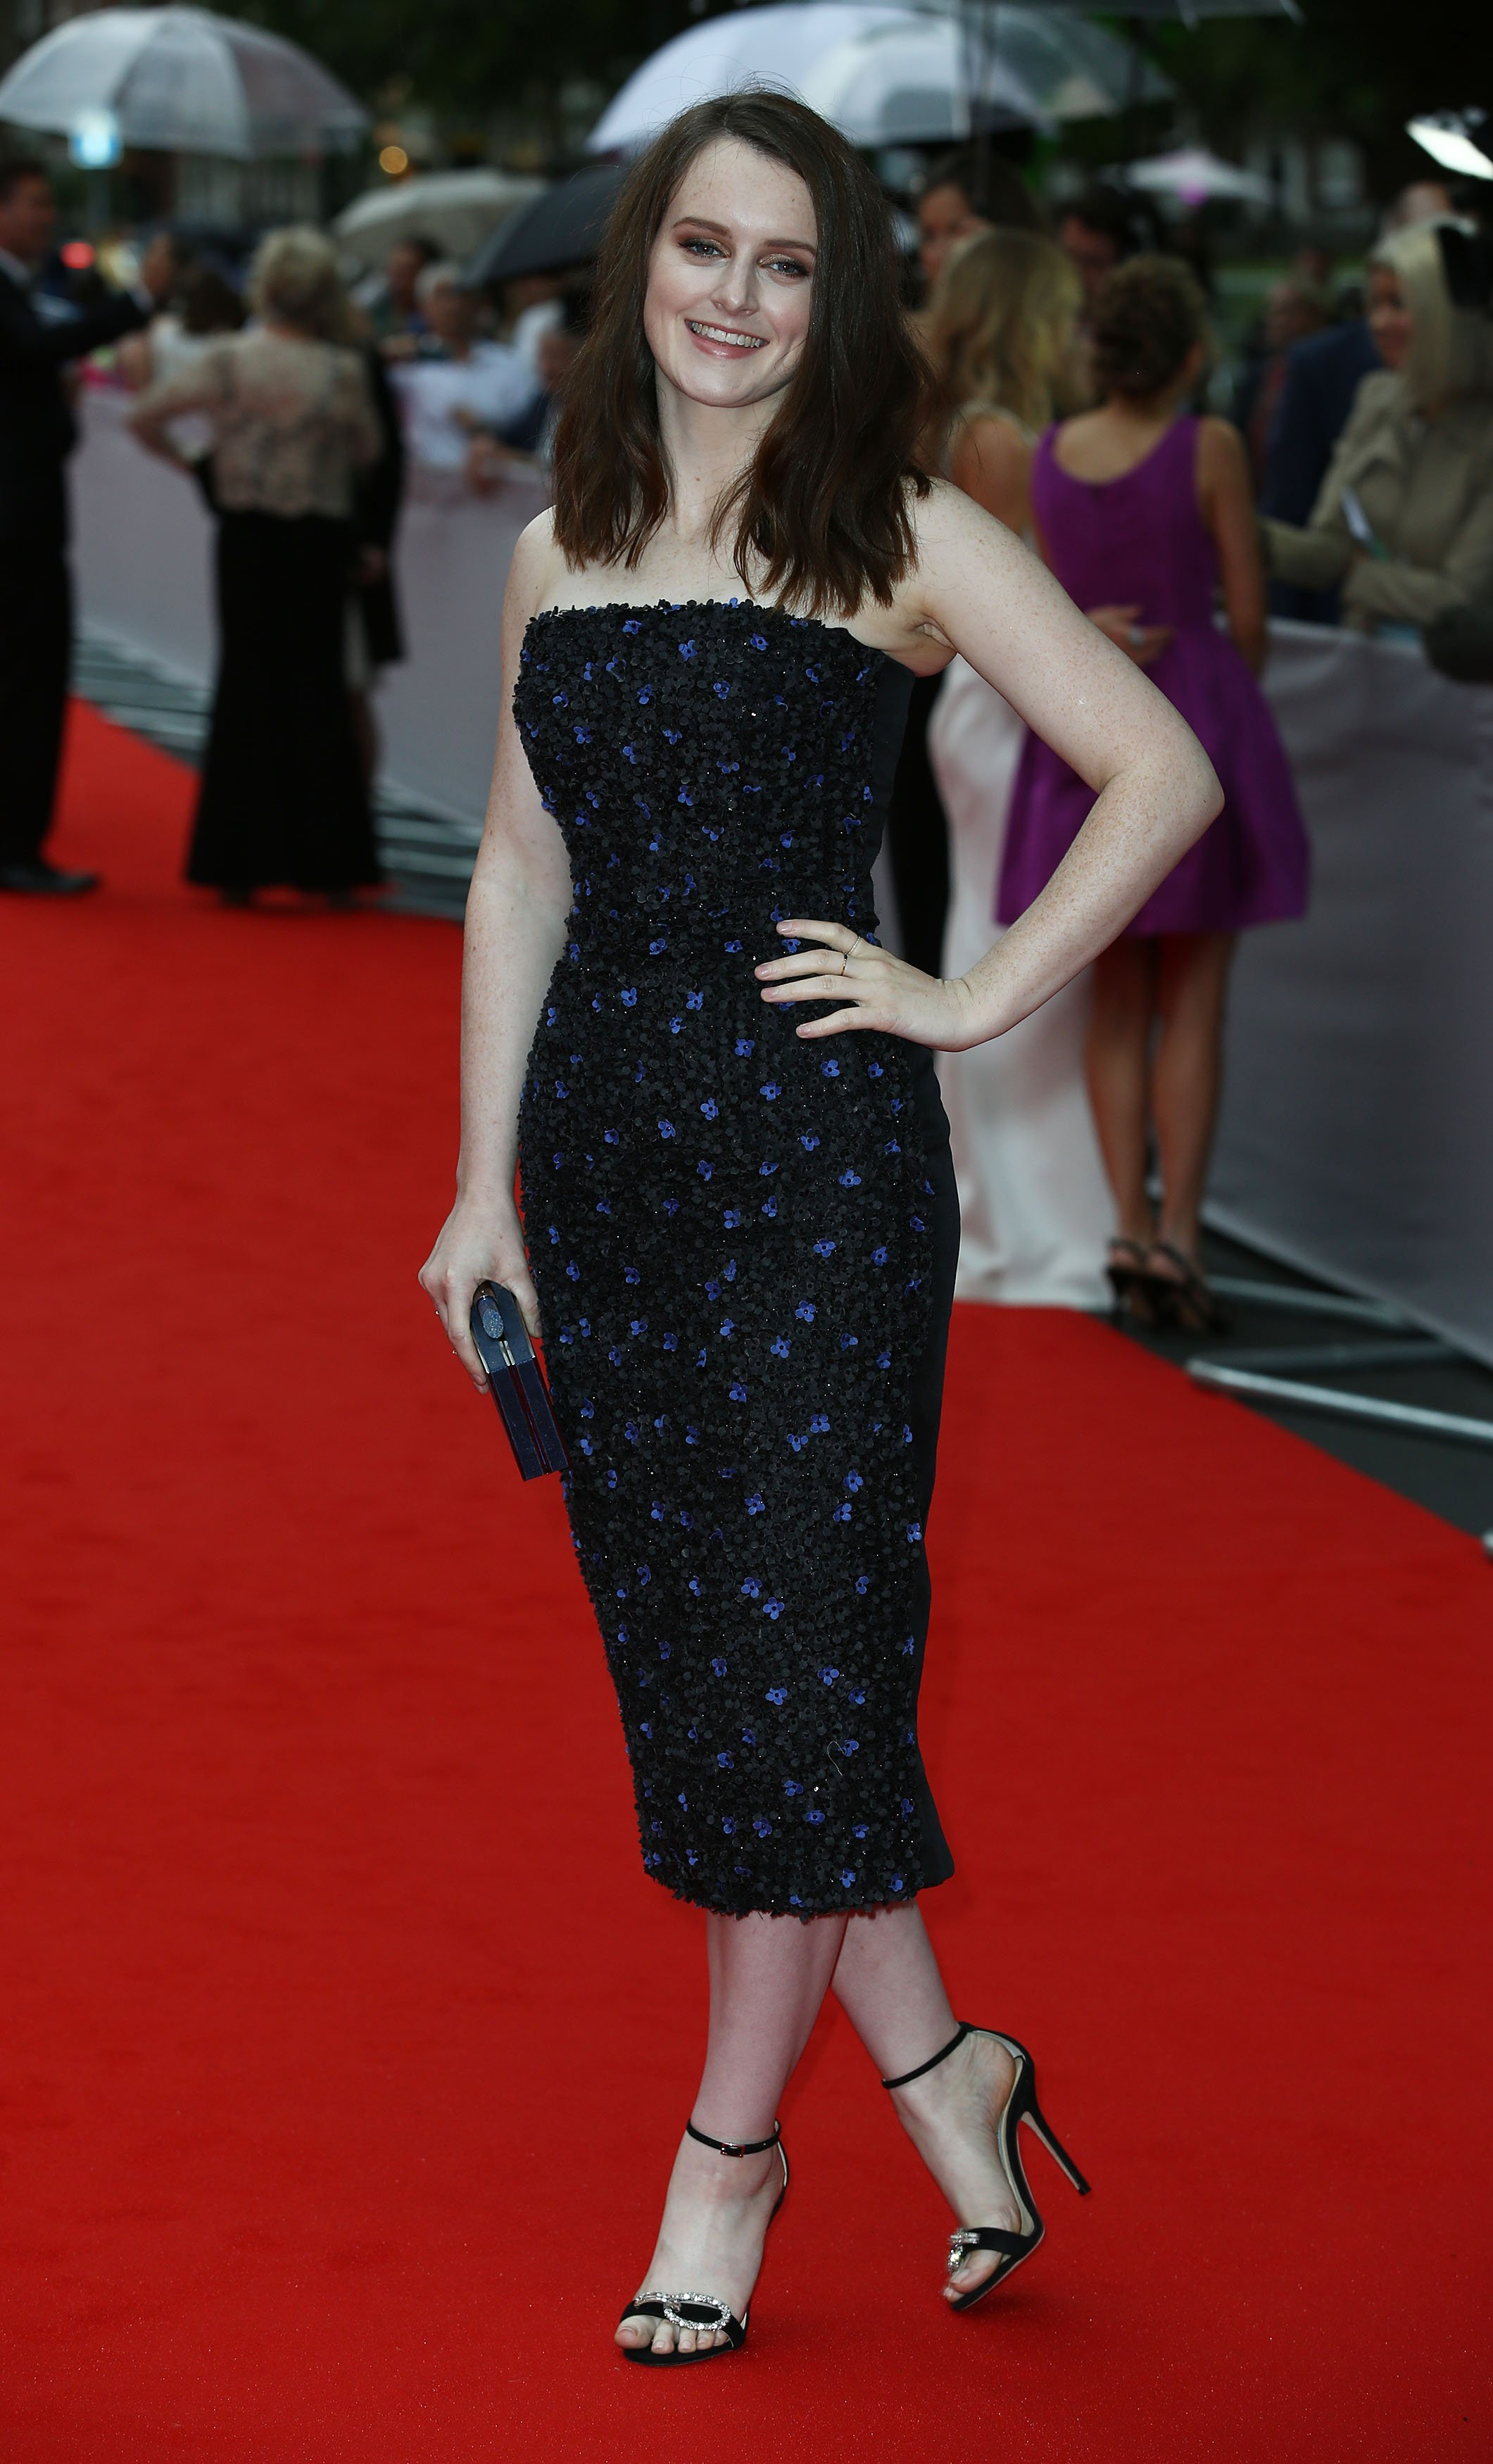 sophie mcshera hot